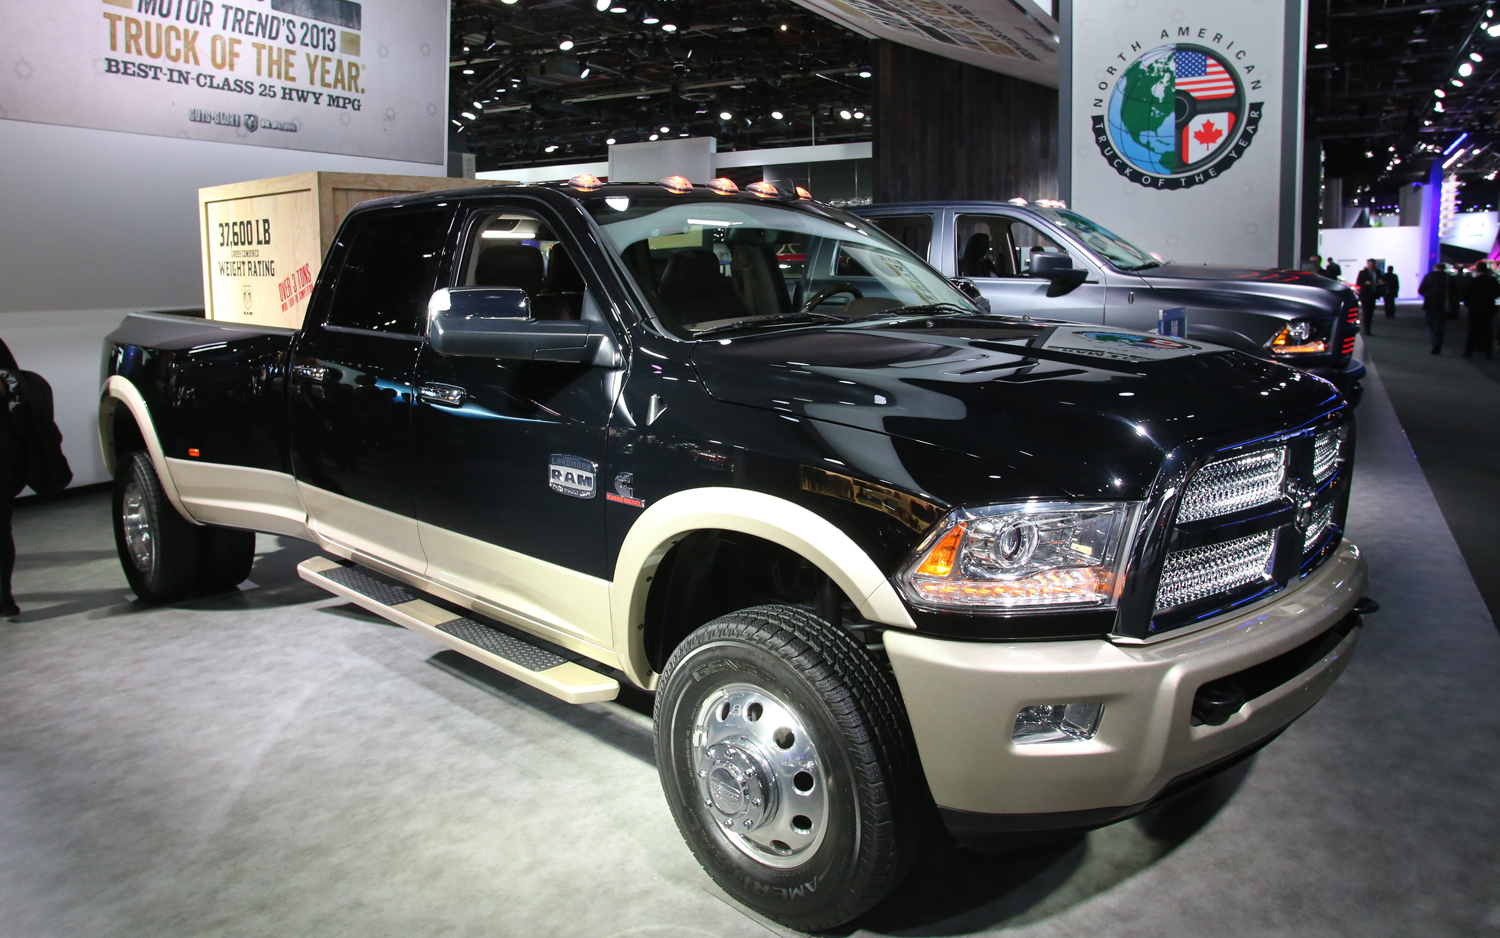 2013 Ram 3500 Hd Truck To Chevrolet Ford Ours Is More Capable